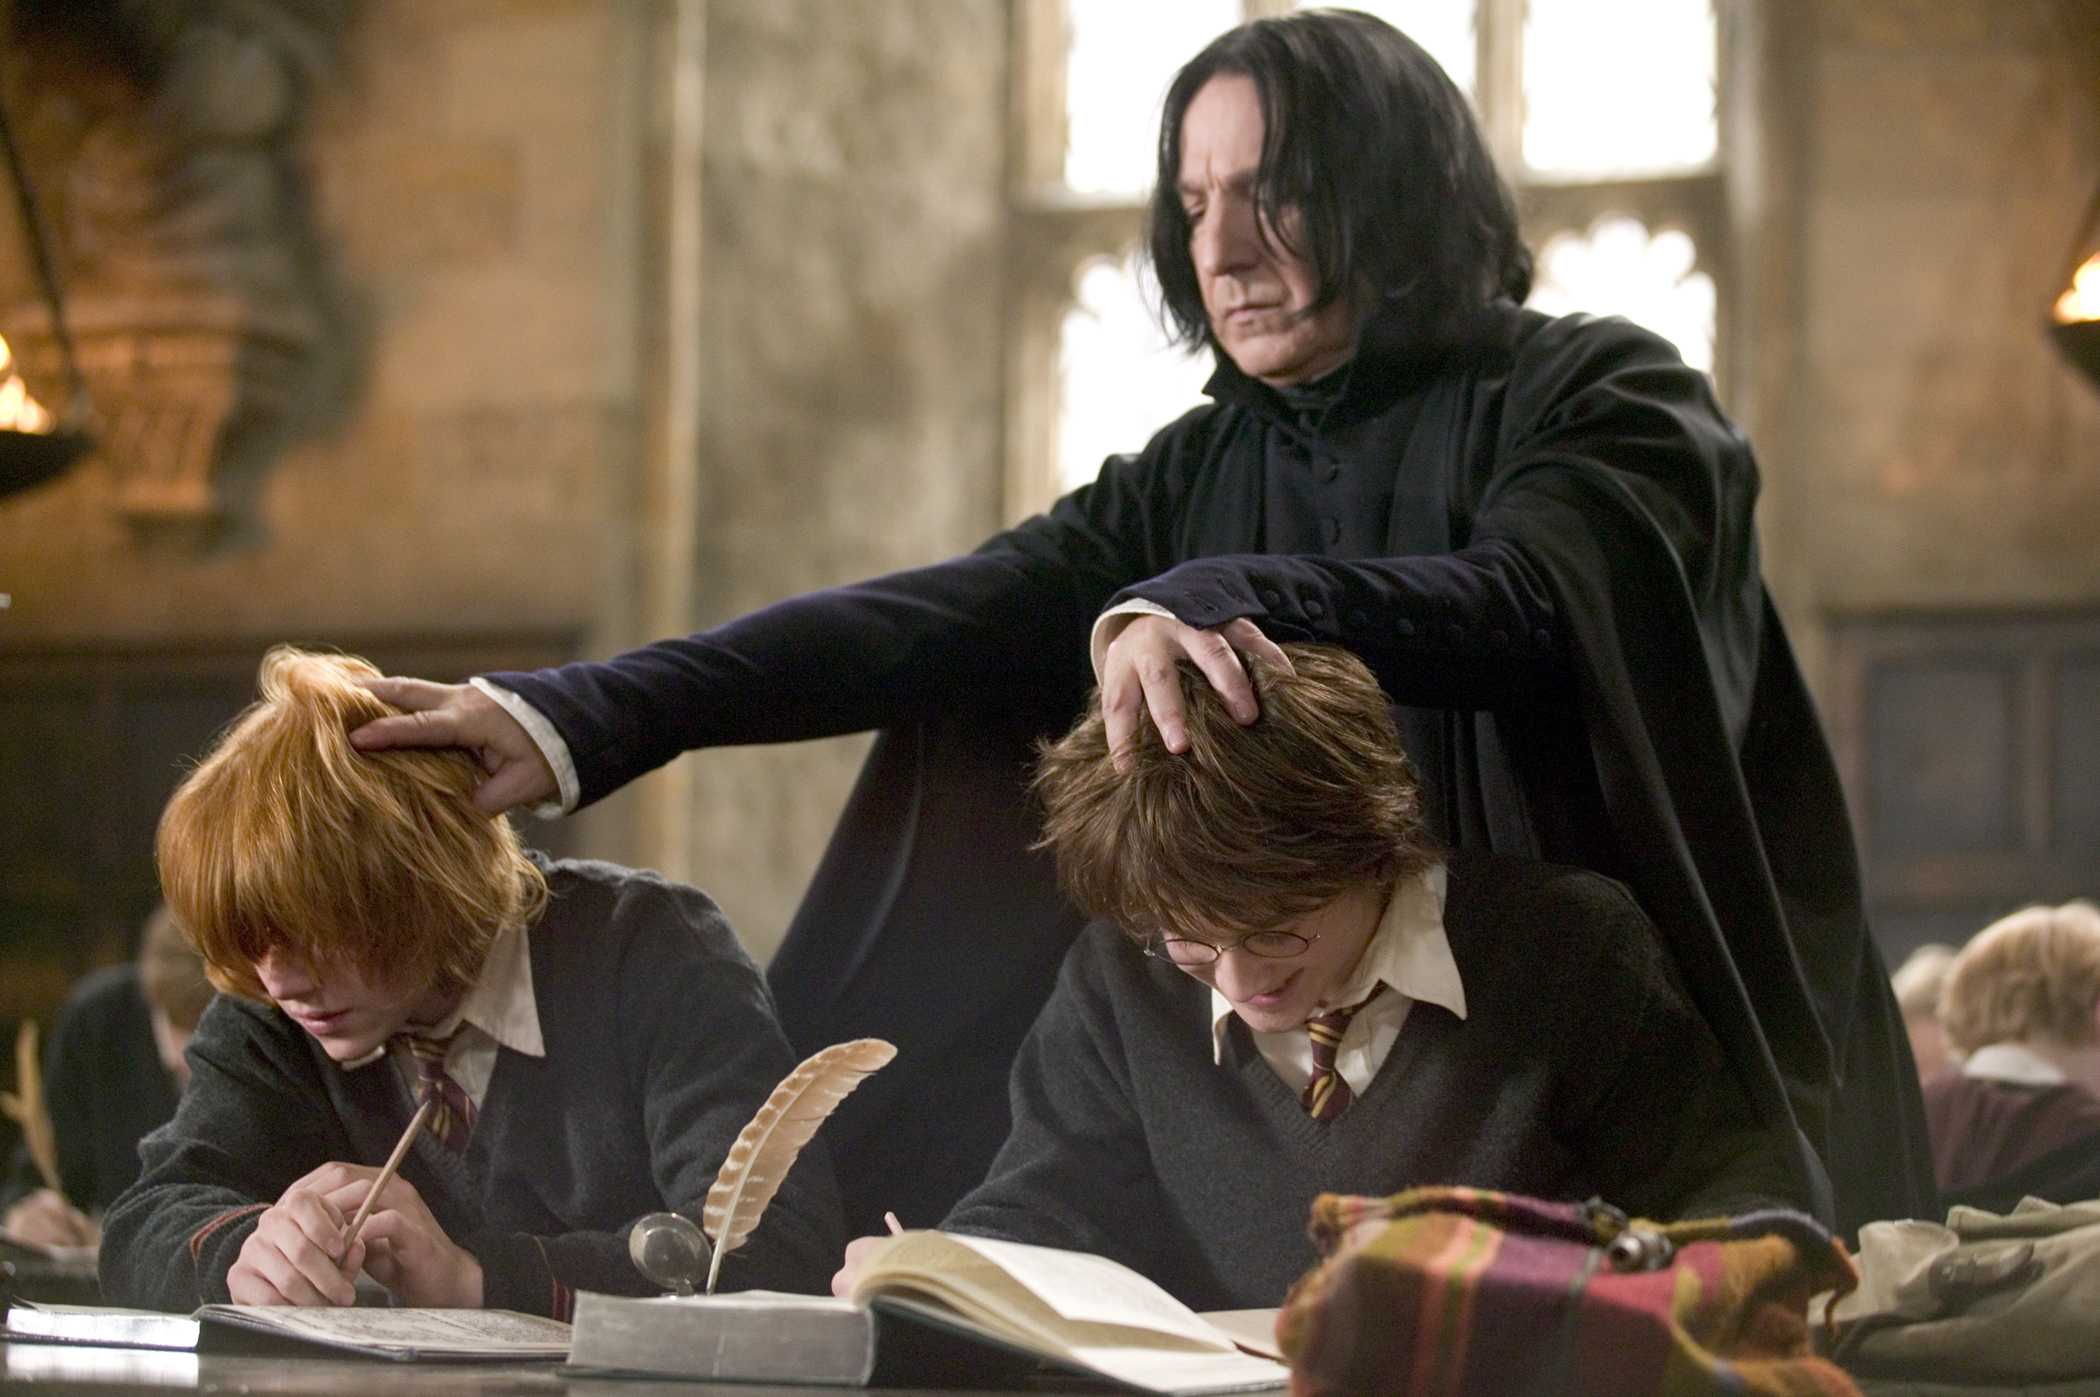 (L-r) RUPERT GRINT as Ron Weasley, ALAN RICKMAN as Severus Snape and DANIEL RADCLIFFE as Harry Potter in Warner Bros. PicturesÕ fantasy ÒHarry Potter and the Goblet of Fire.Ó PHOTOGRAPHS TO BE USED SOLELY FOR ADVERTISING, PROMOTION, PUBLICITY OR REVIEWS OF THIS SPECIFIC MOTION PICTURE AND TO REMAIN THE PROPERTY OF THE STUDIO. NOT FOR SALE OR REDISTRIBUTION.